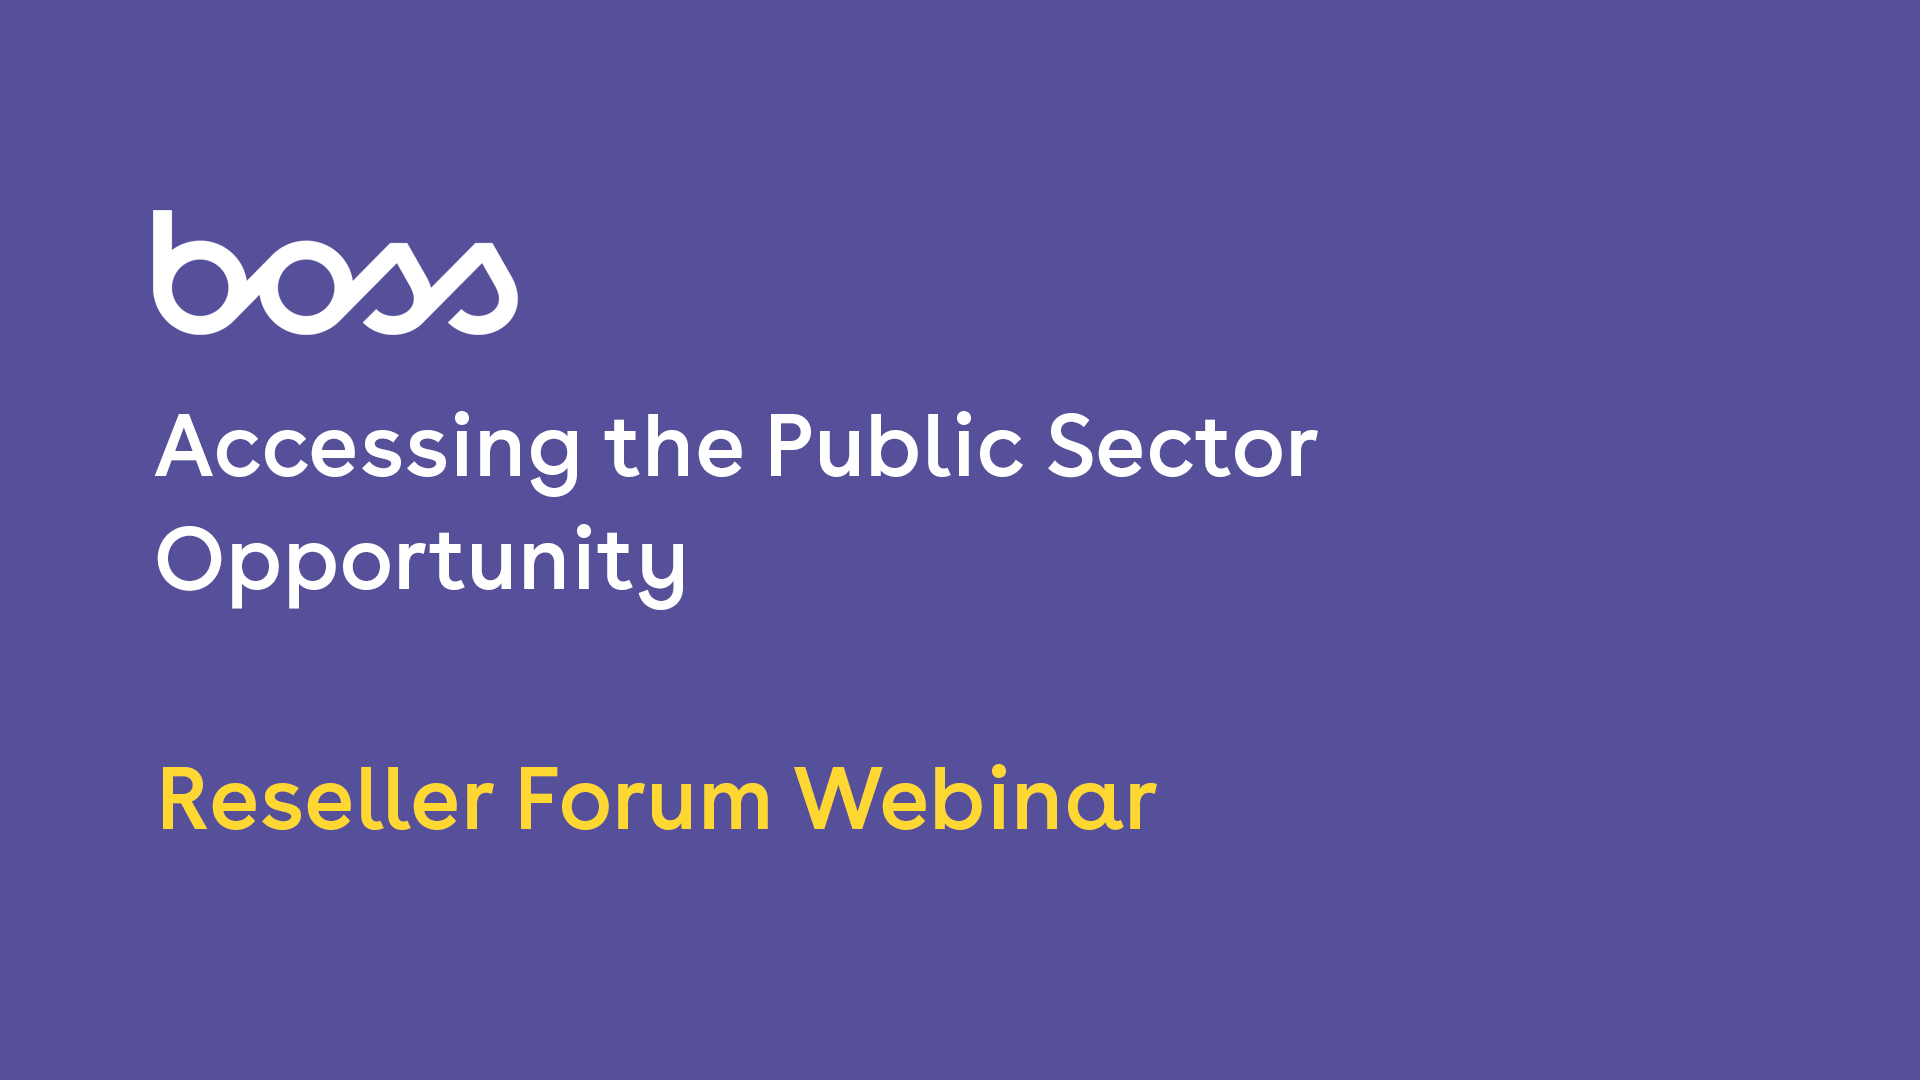 BOSS Reseller Forum Webinar: accessing the public sector opportunity